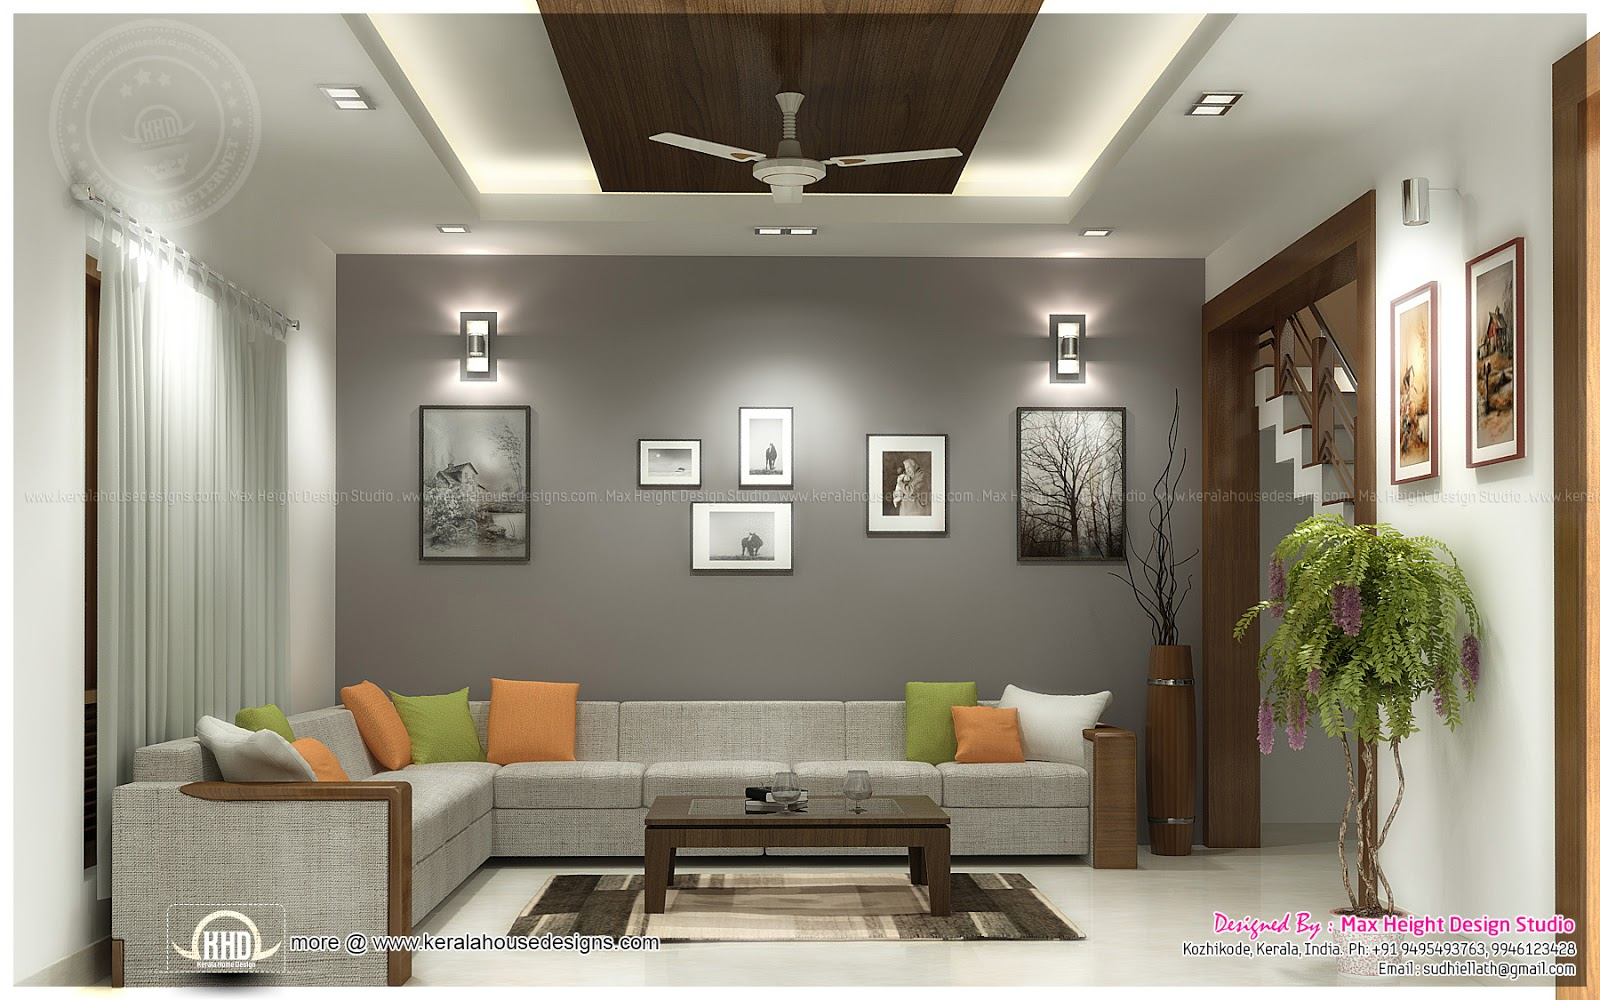 Beautiful interior ideas for home kerala home design and for Interior designs home